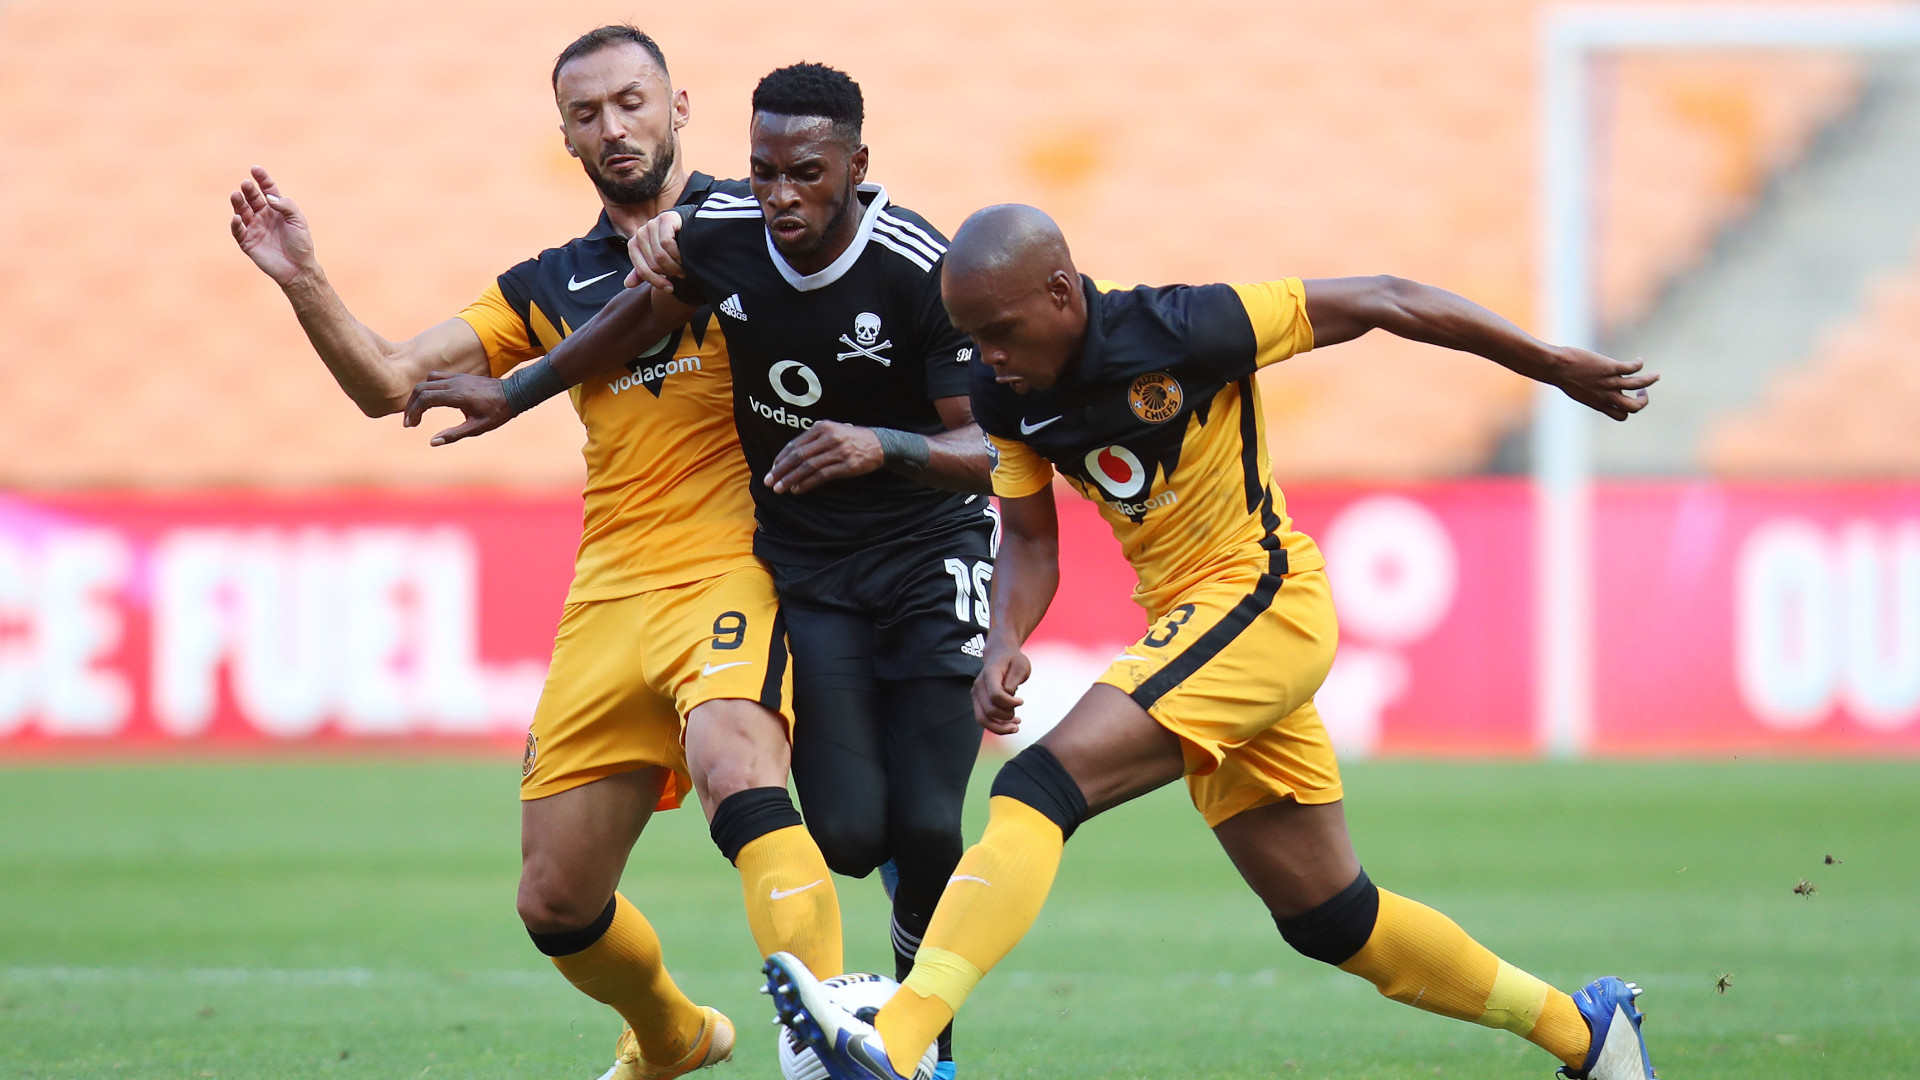 Carling Black Label Cup: Which Kaizer Chiefs and Orlando Pirates players have the most votes?